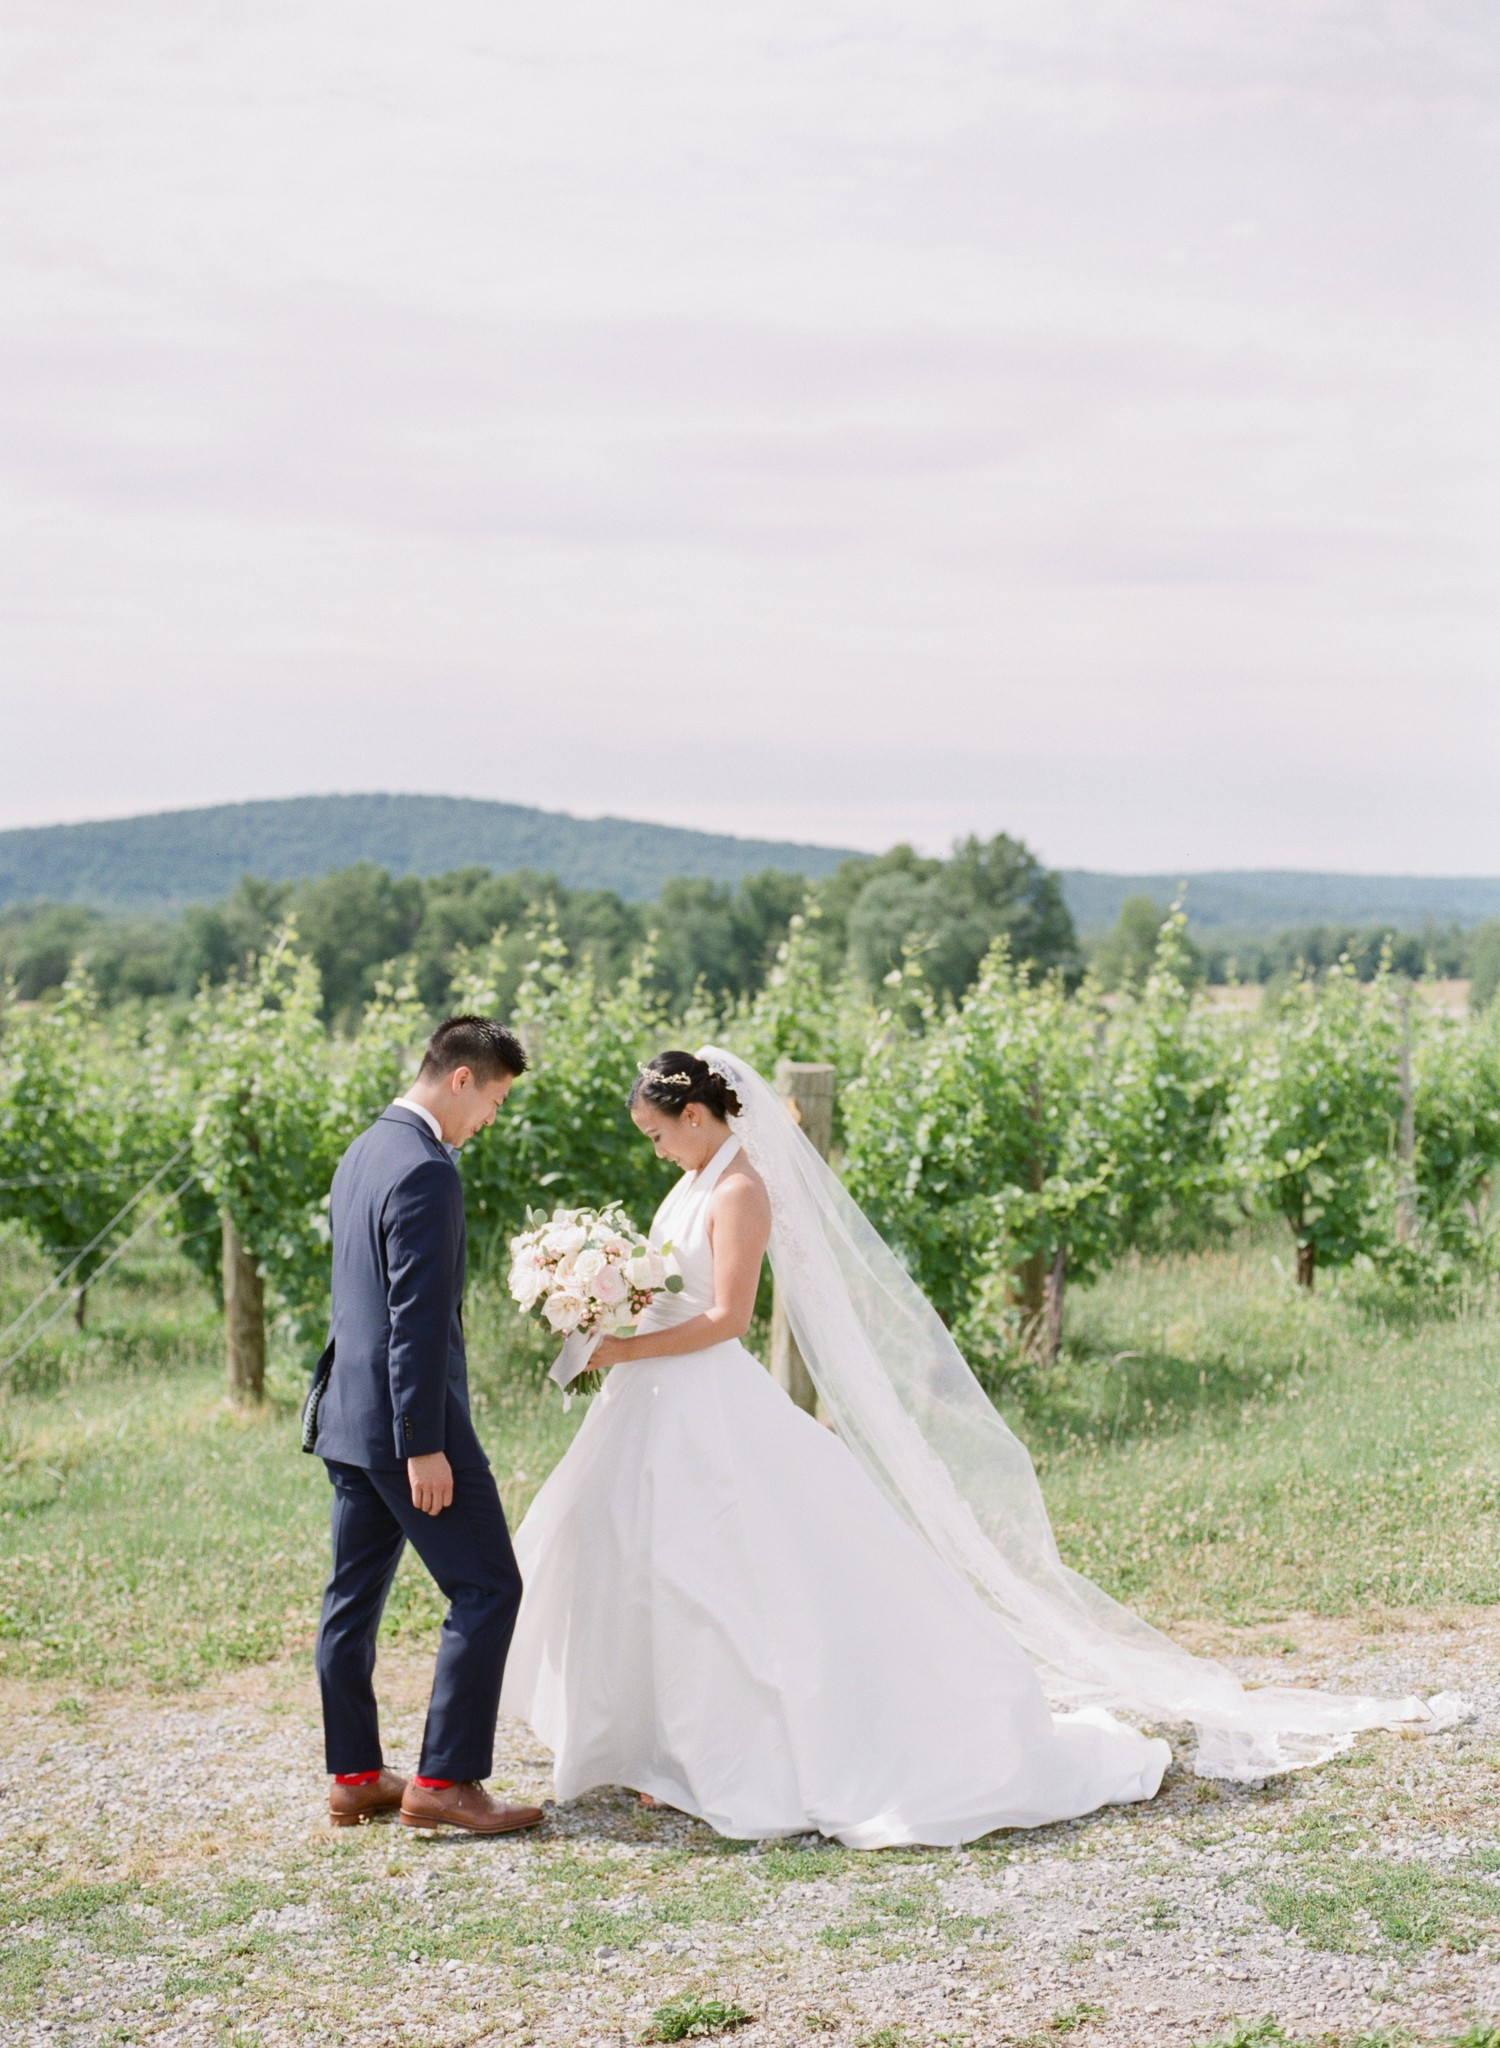 VA-Breaux-Vineyards-Summer-Wedding-Dusty-Blue-19.jpg